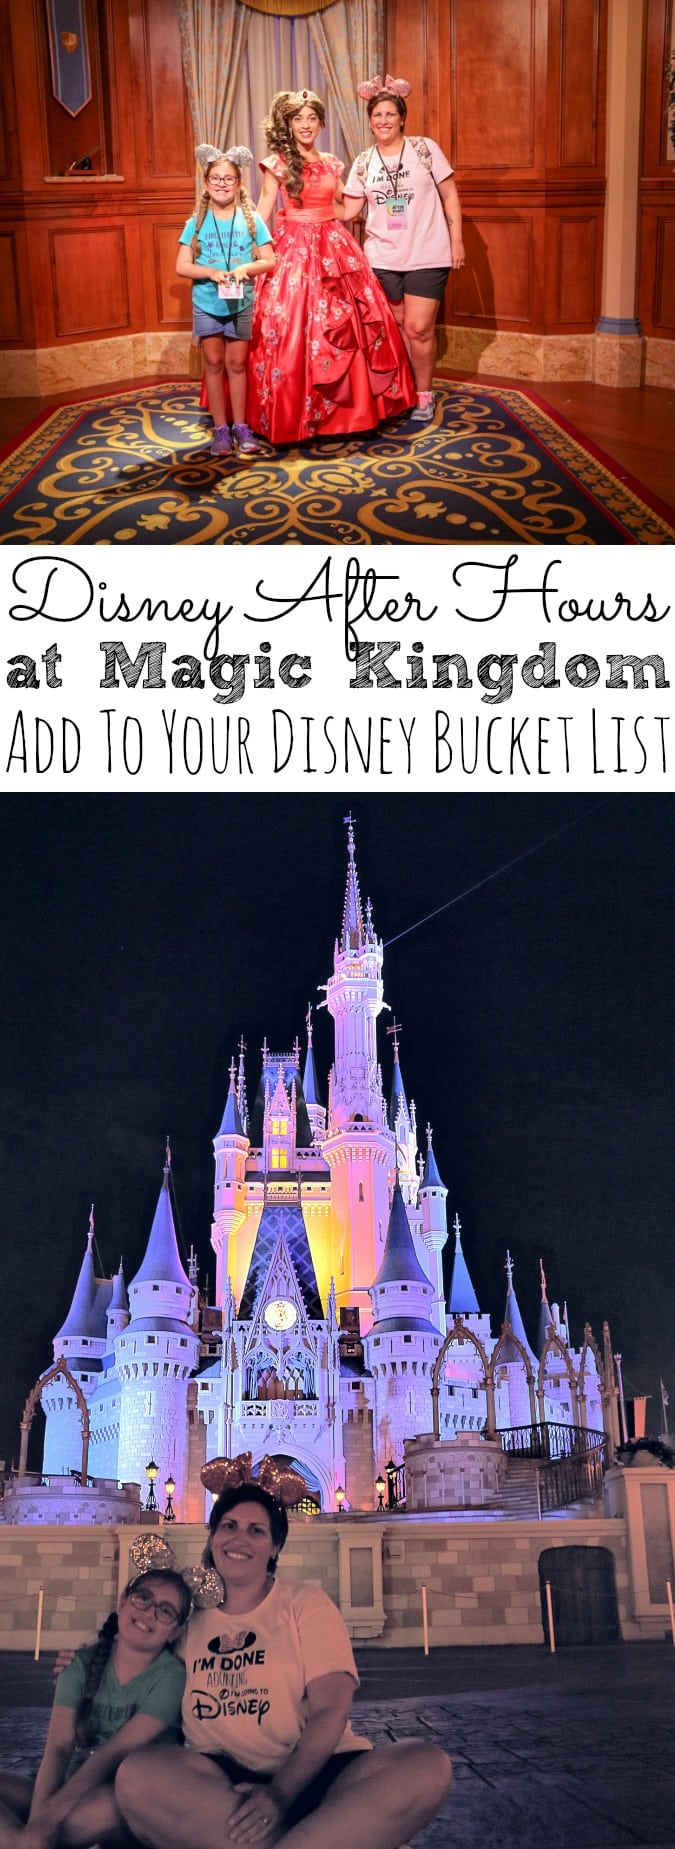 Disney After Hours At Magic Kingdom l Must Add To Your Walt Disney World Bucket List - simplytodaylife.com